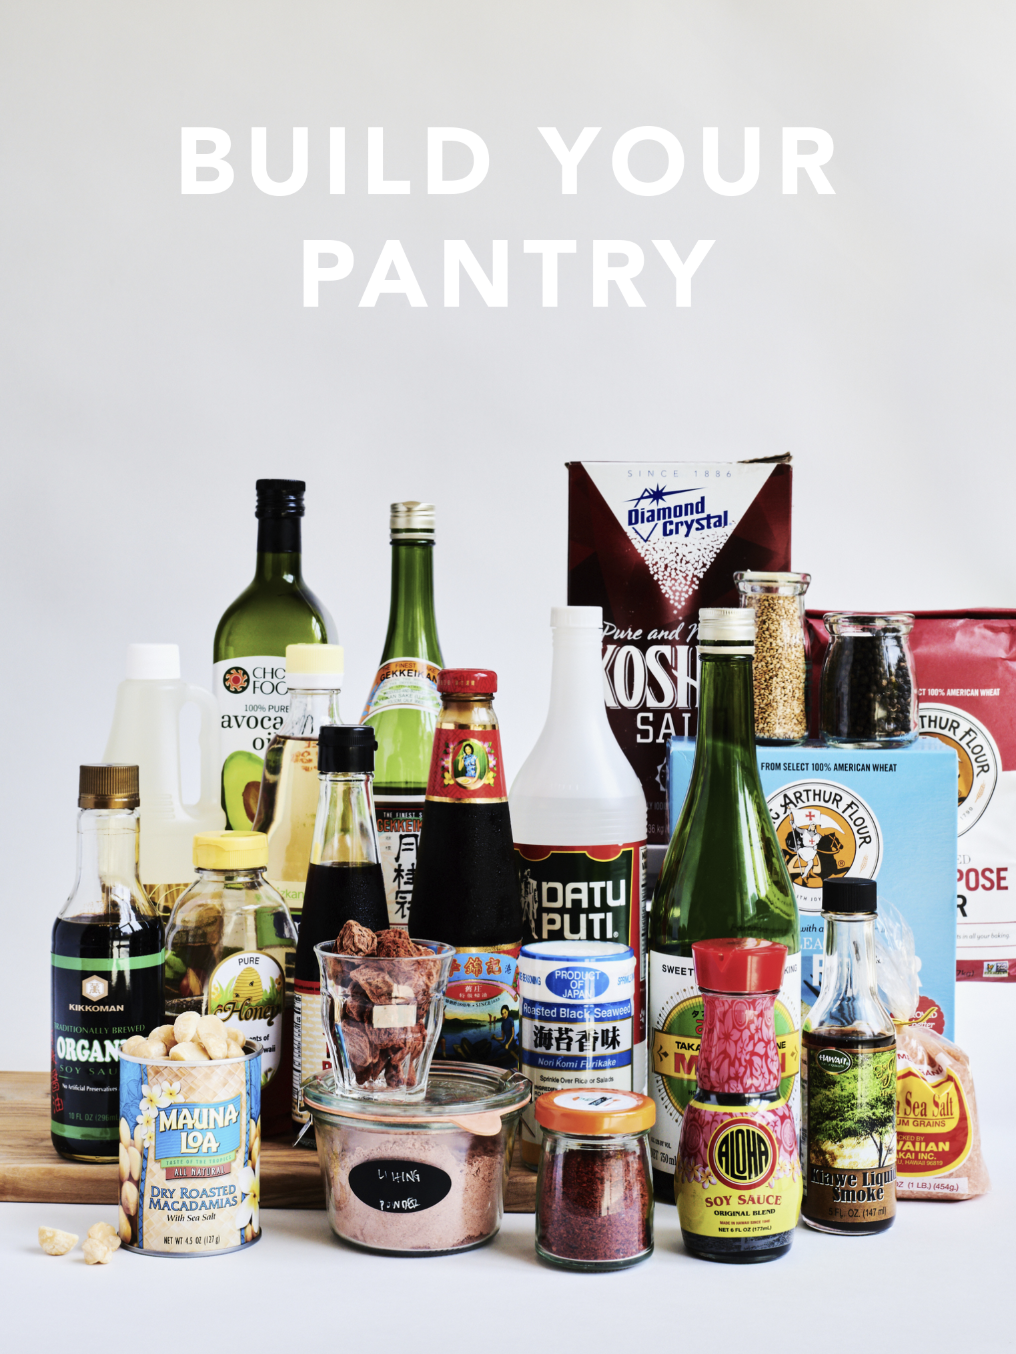 Track down those hard to find pantry items online    here!